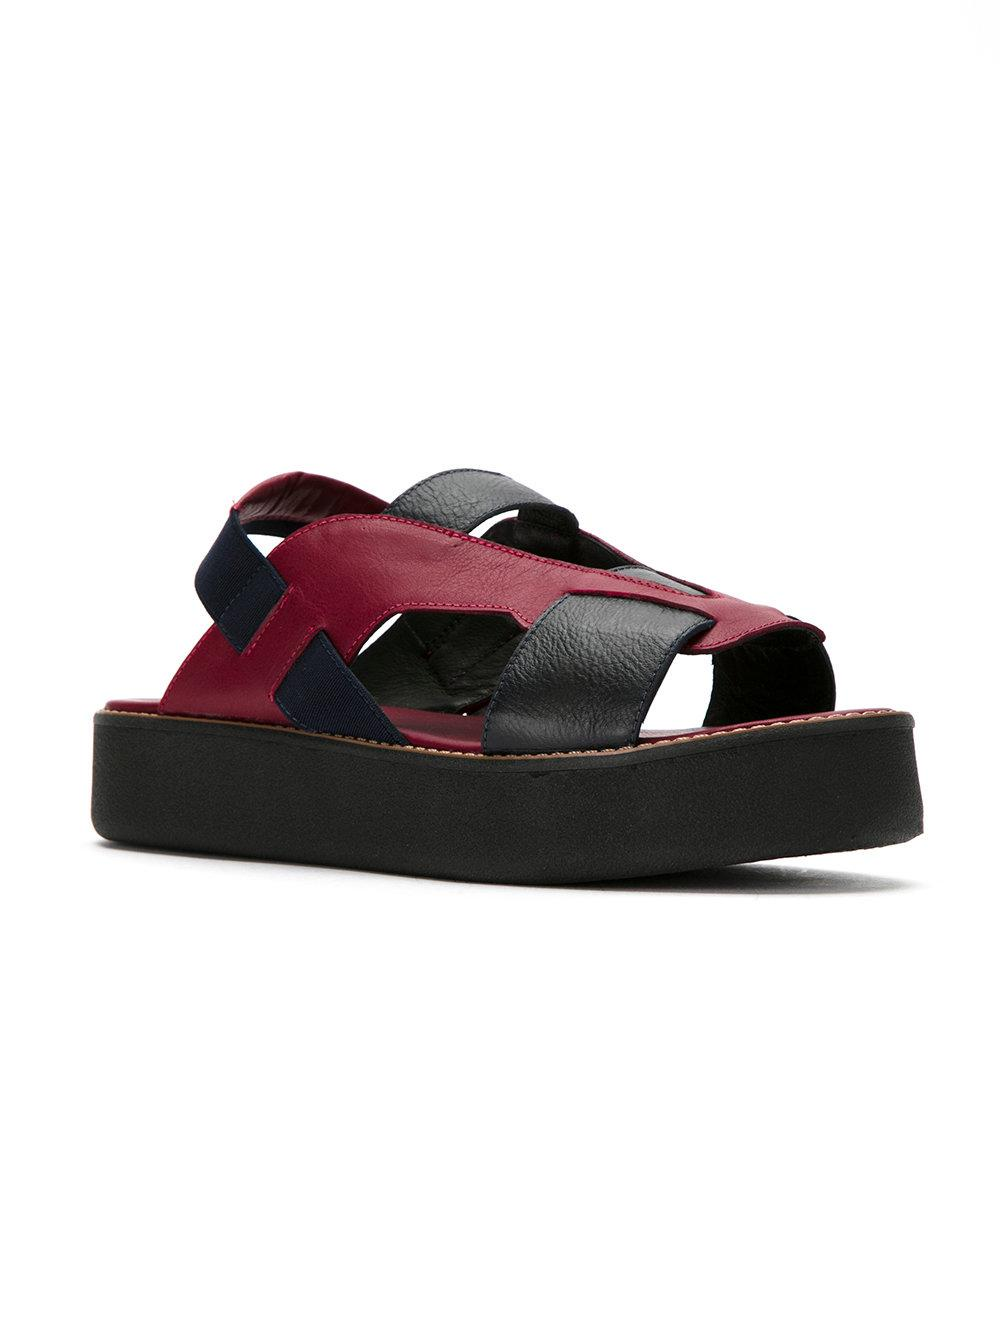 Cost leather sandals - Red Mara Mac Cheap Professional With Paypal Cheap Price Amazon Cheap Online Sale Discounts FFSg4z